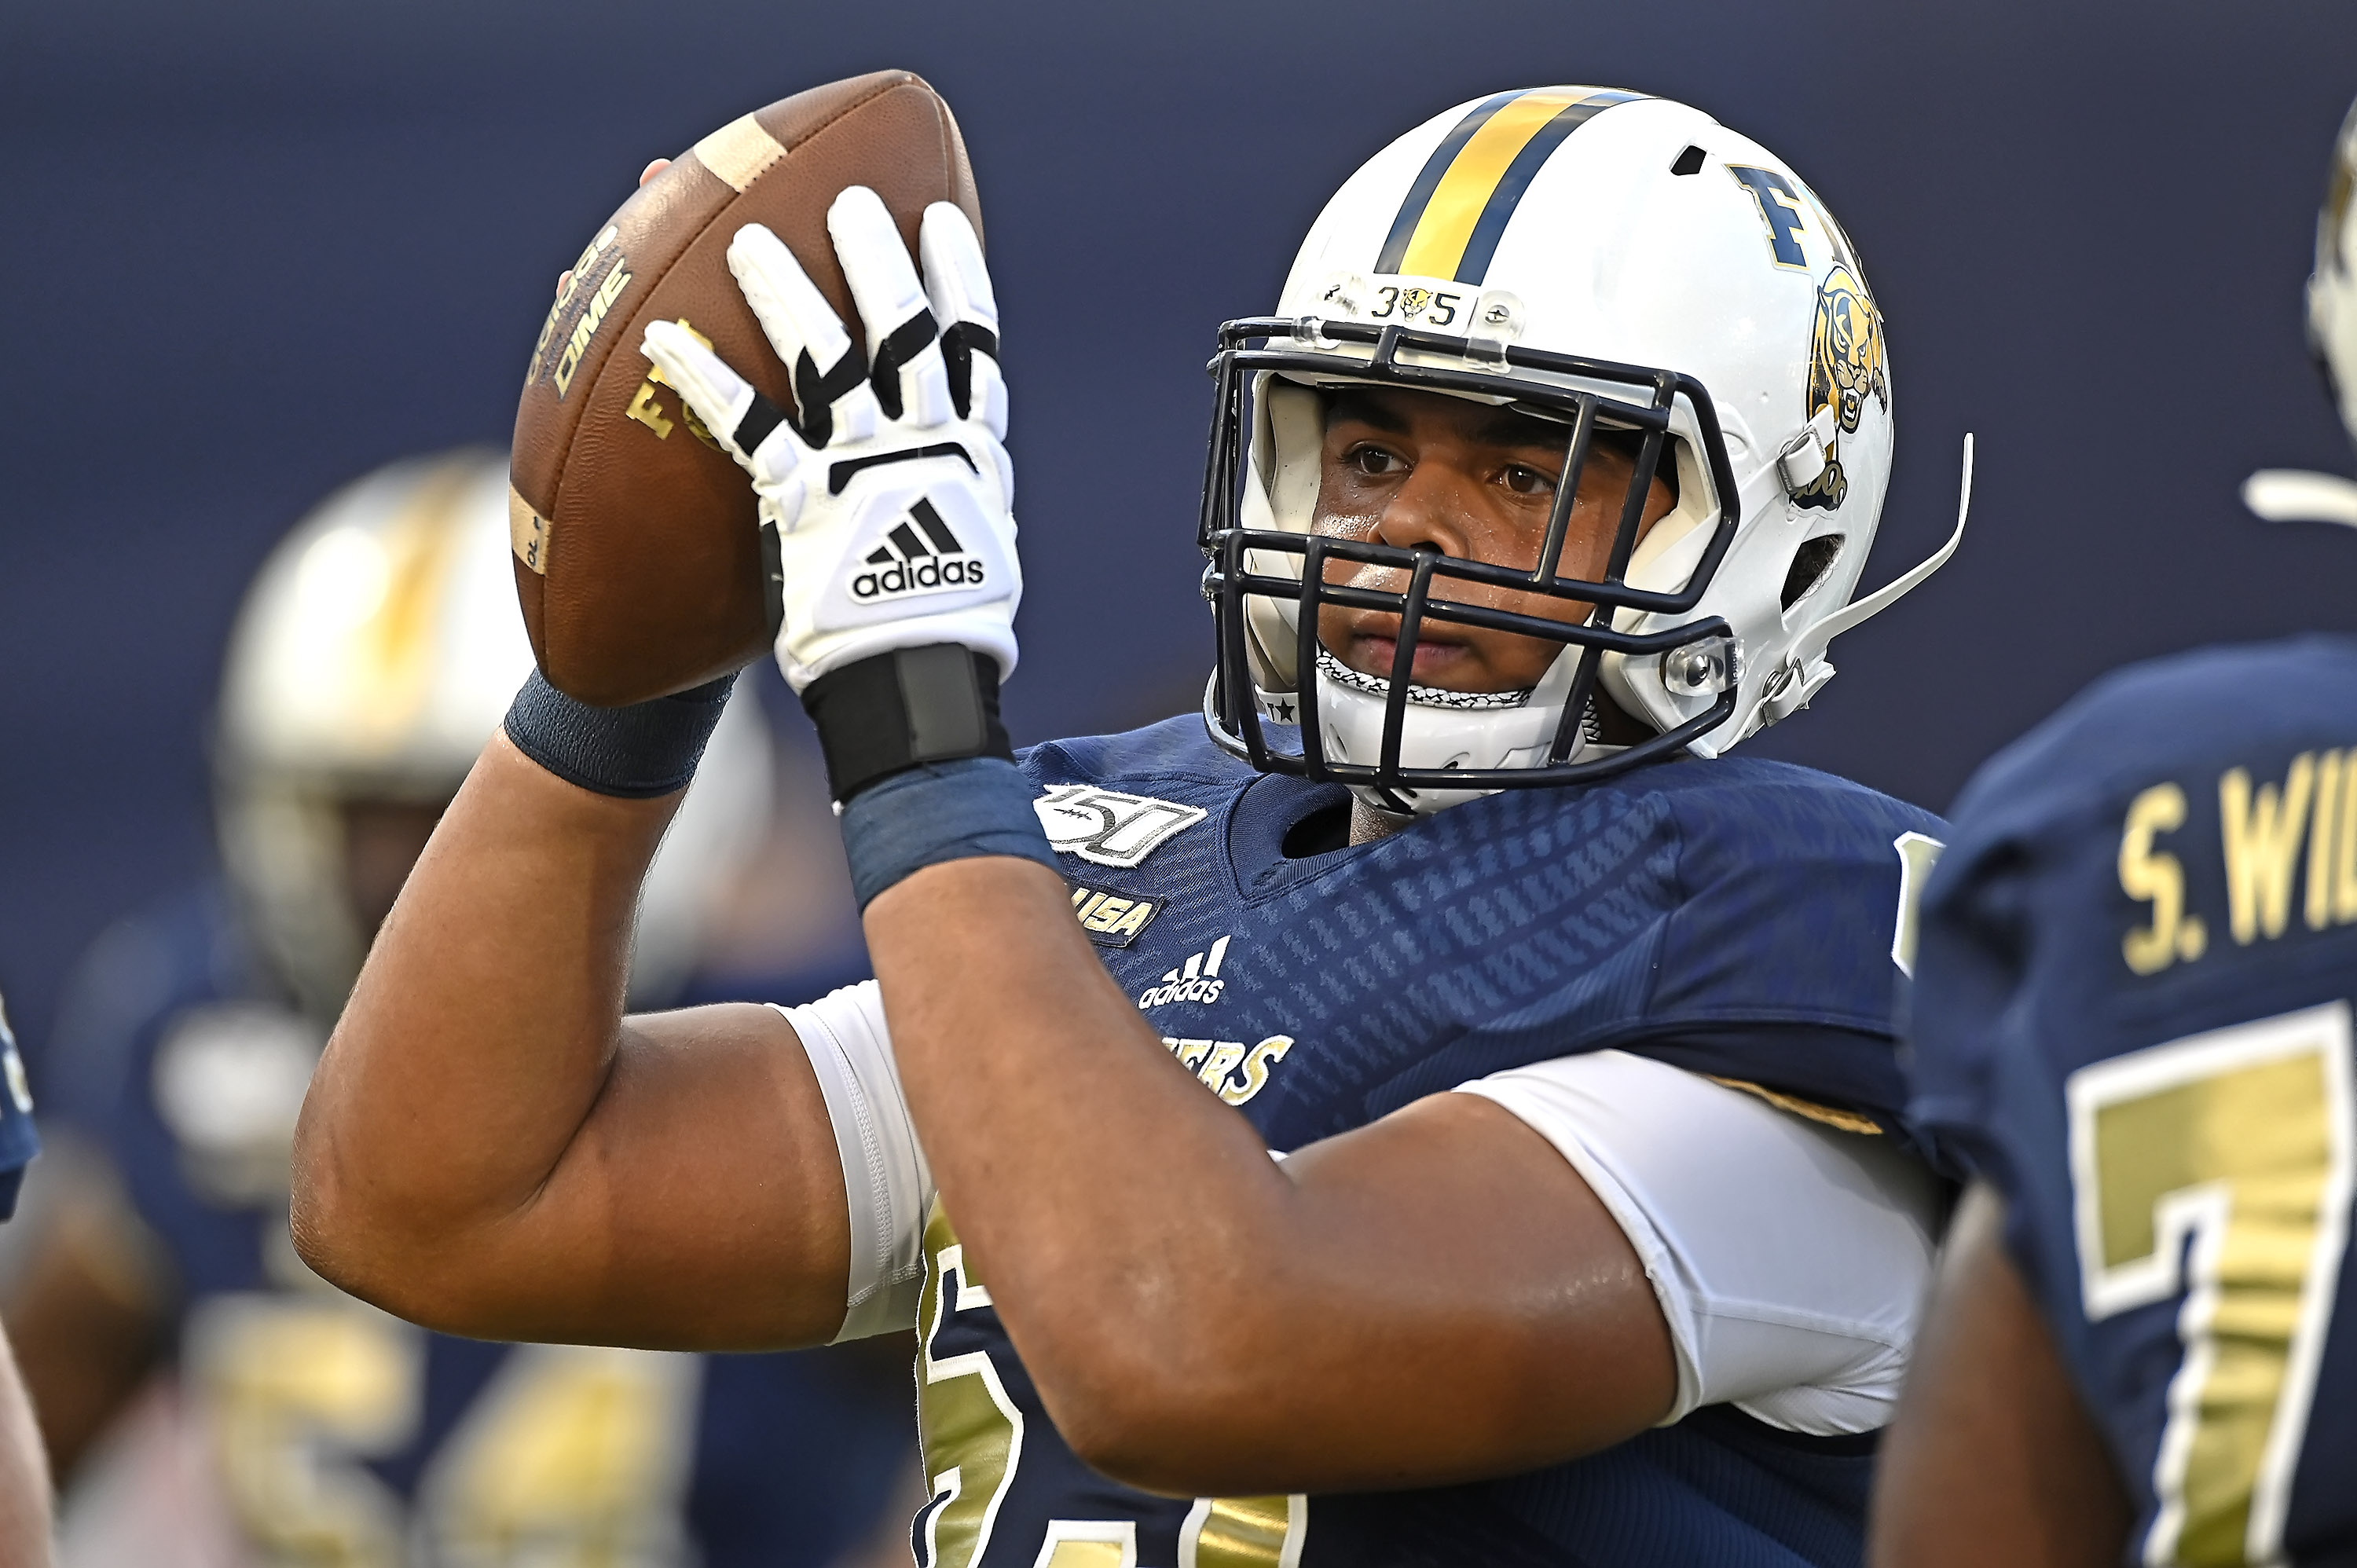 COLLEGE FOOTBALL: OCT 12 Charlotte at FIU